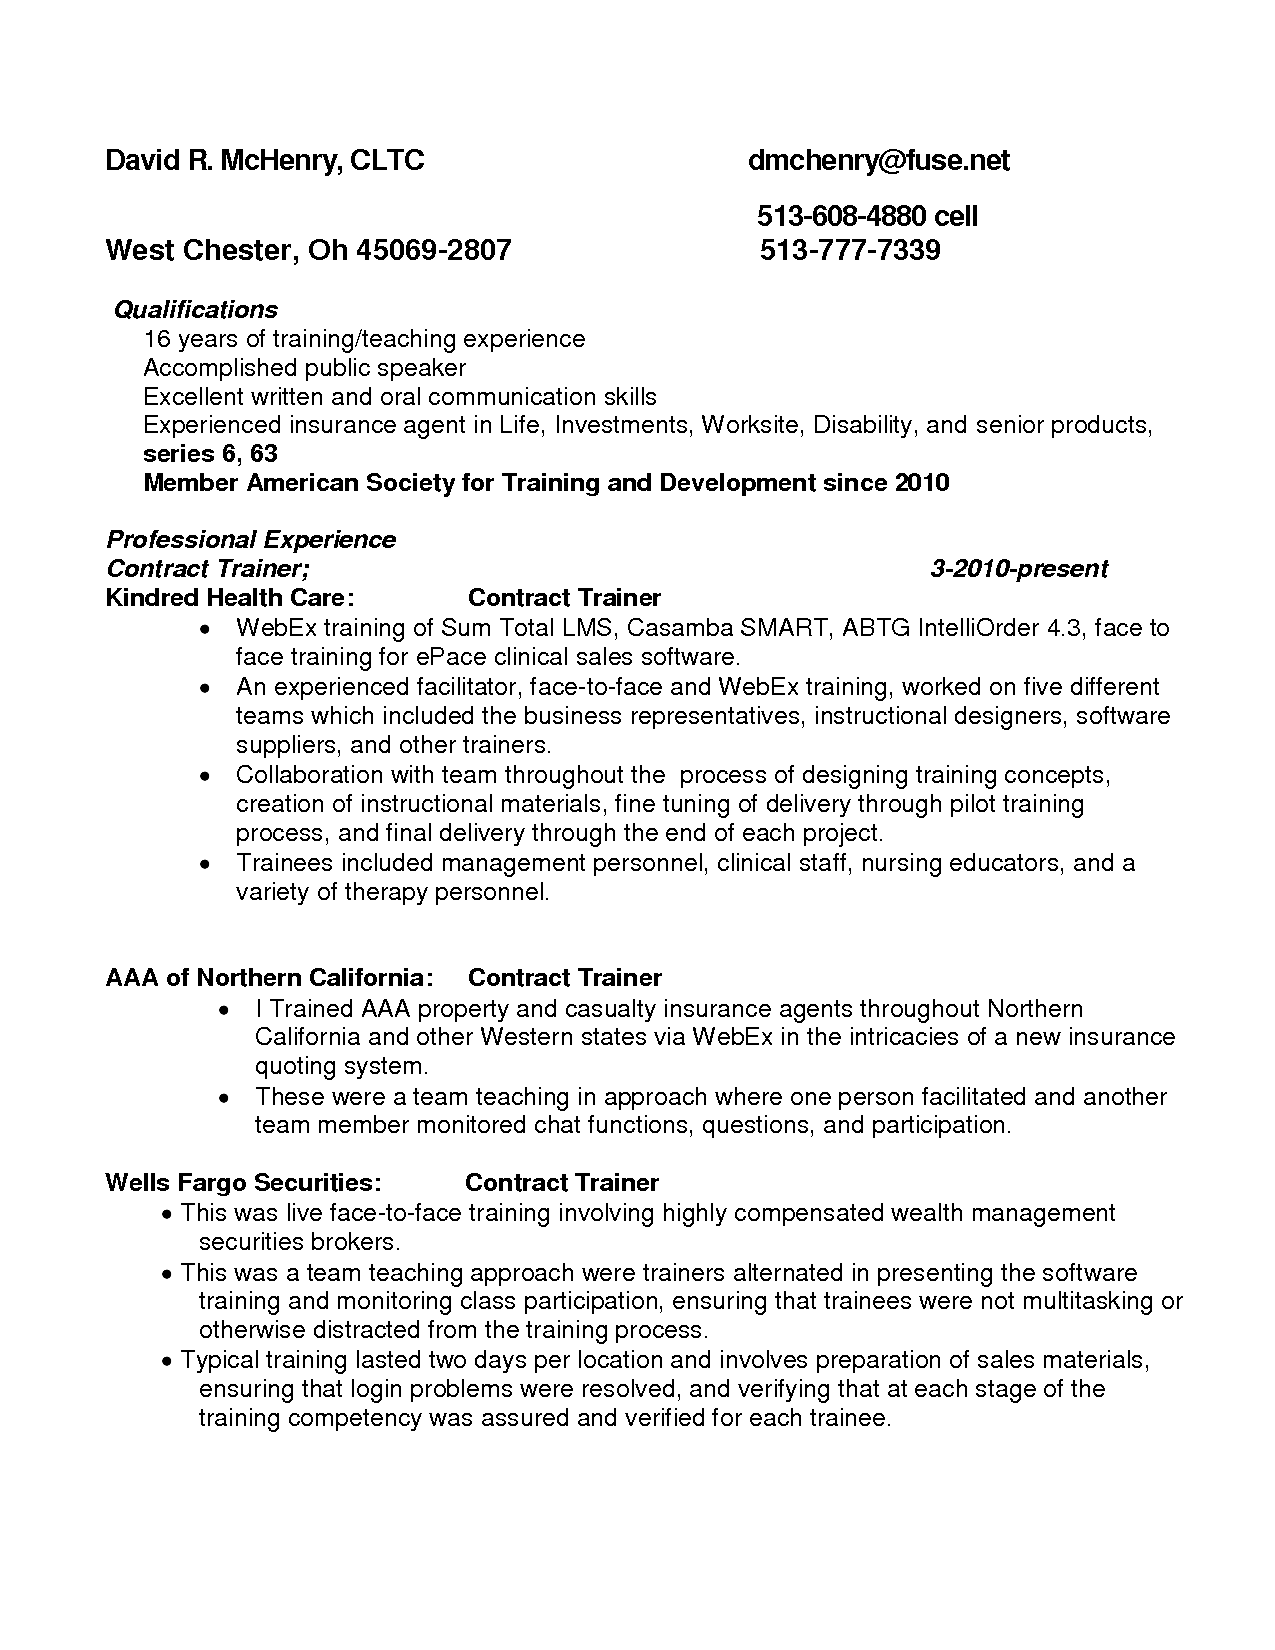 insurance agent resume examples httpwwwjobresumewebsiteinsurance - Insurance Agent Resume Sample